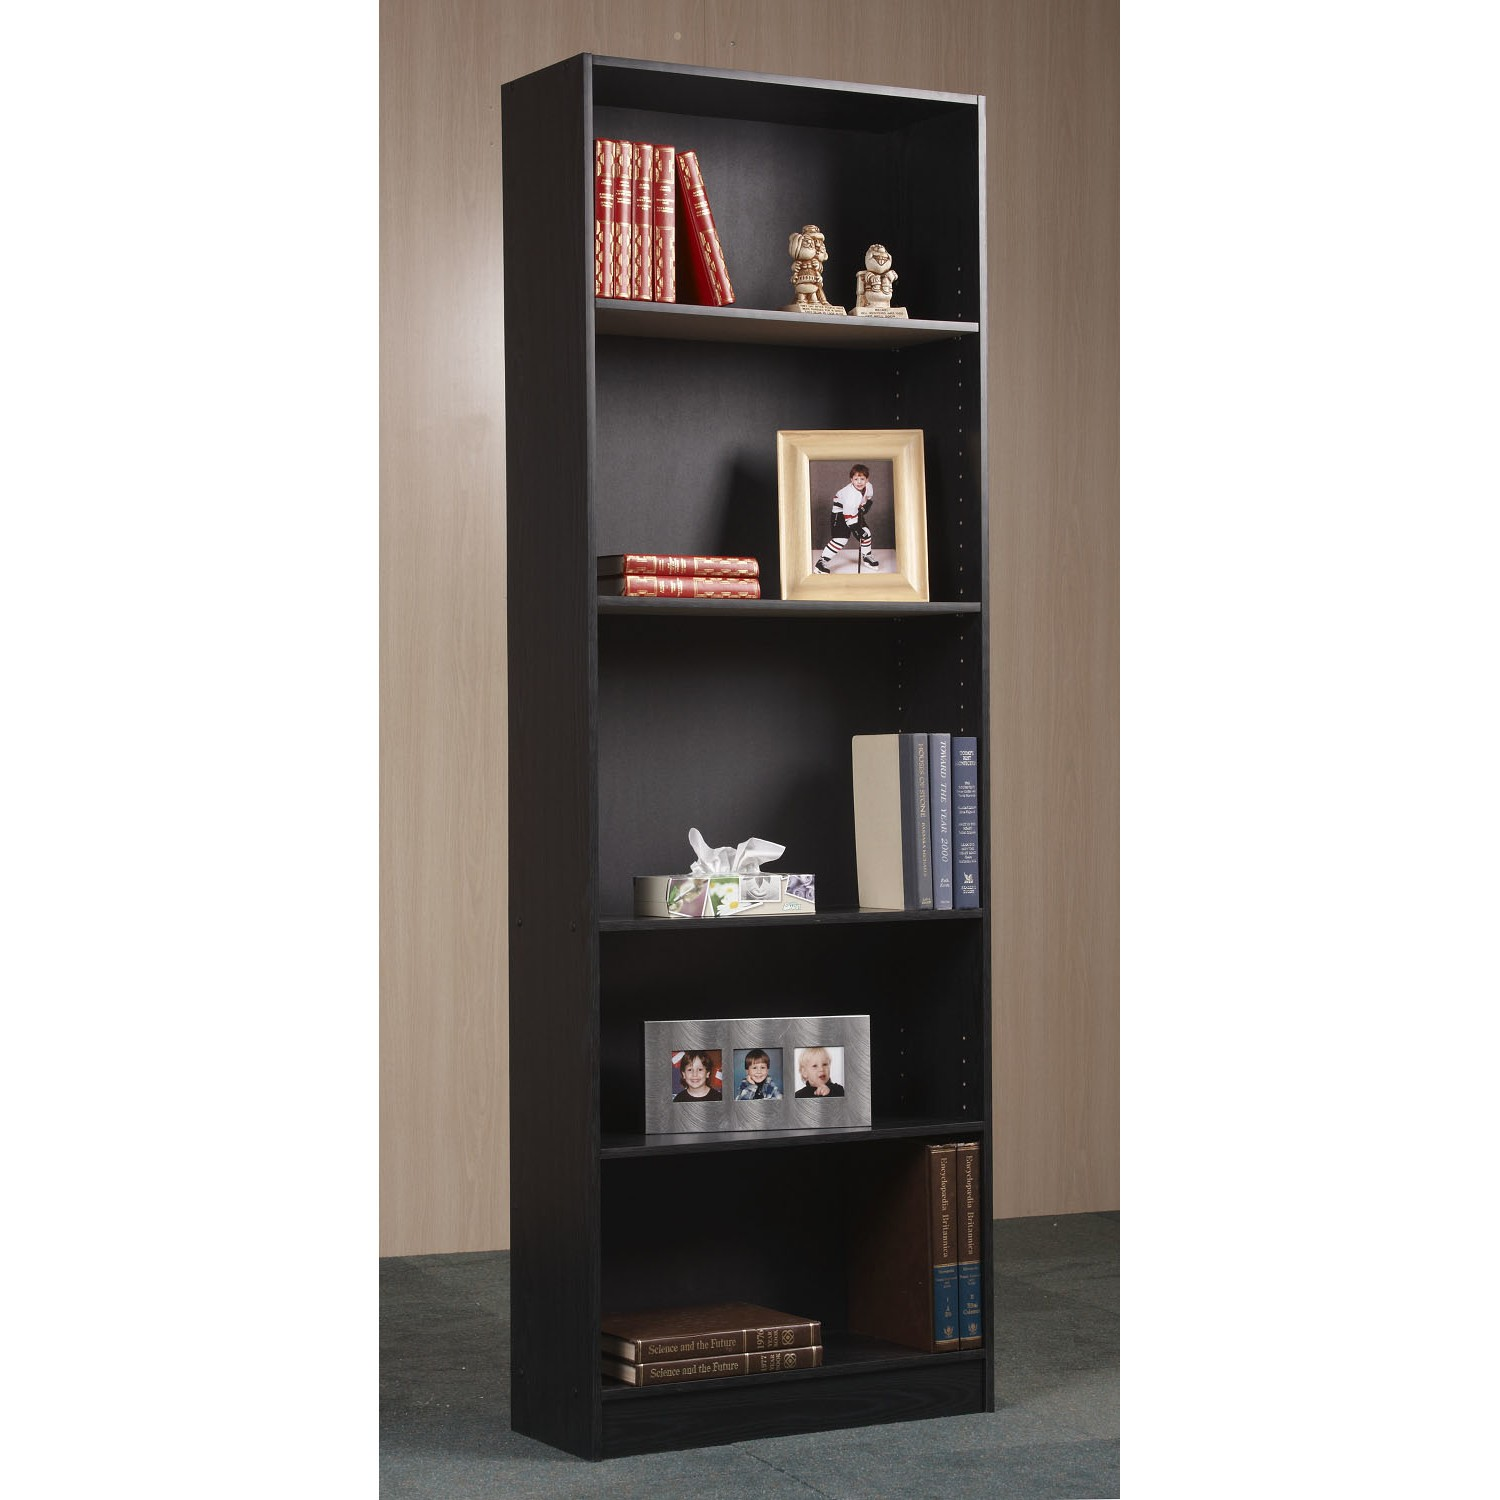 Image of: Room Essentials Bookcase Tall